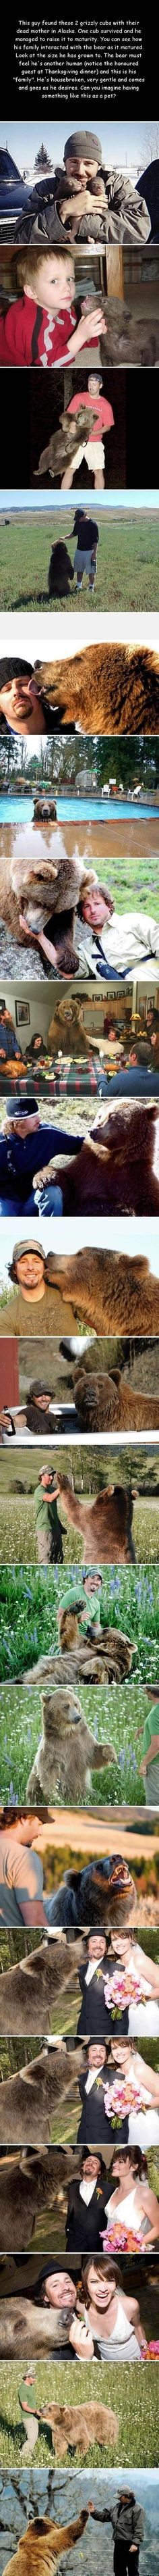 Thanks Pinterest. Now I want a bear.